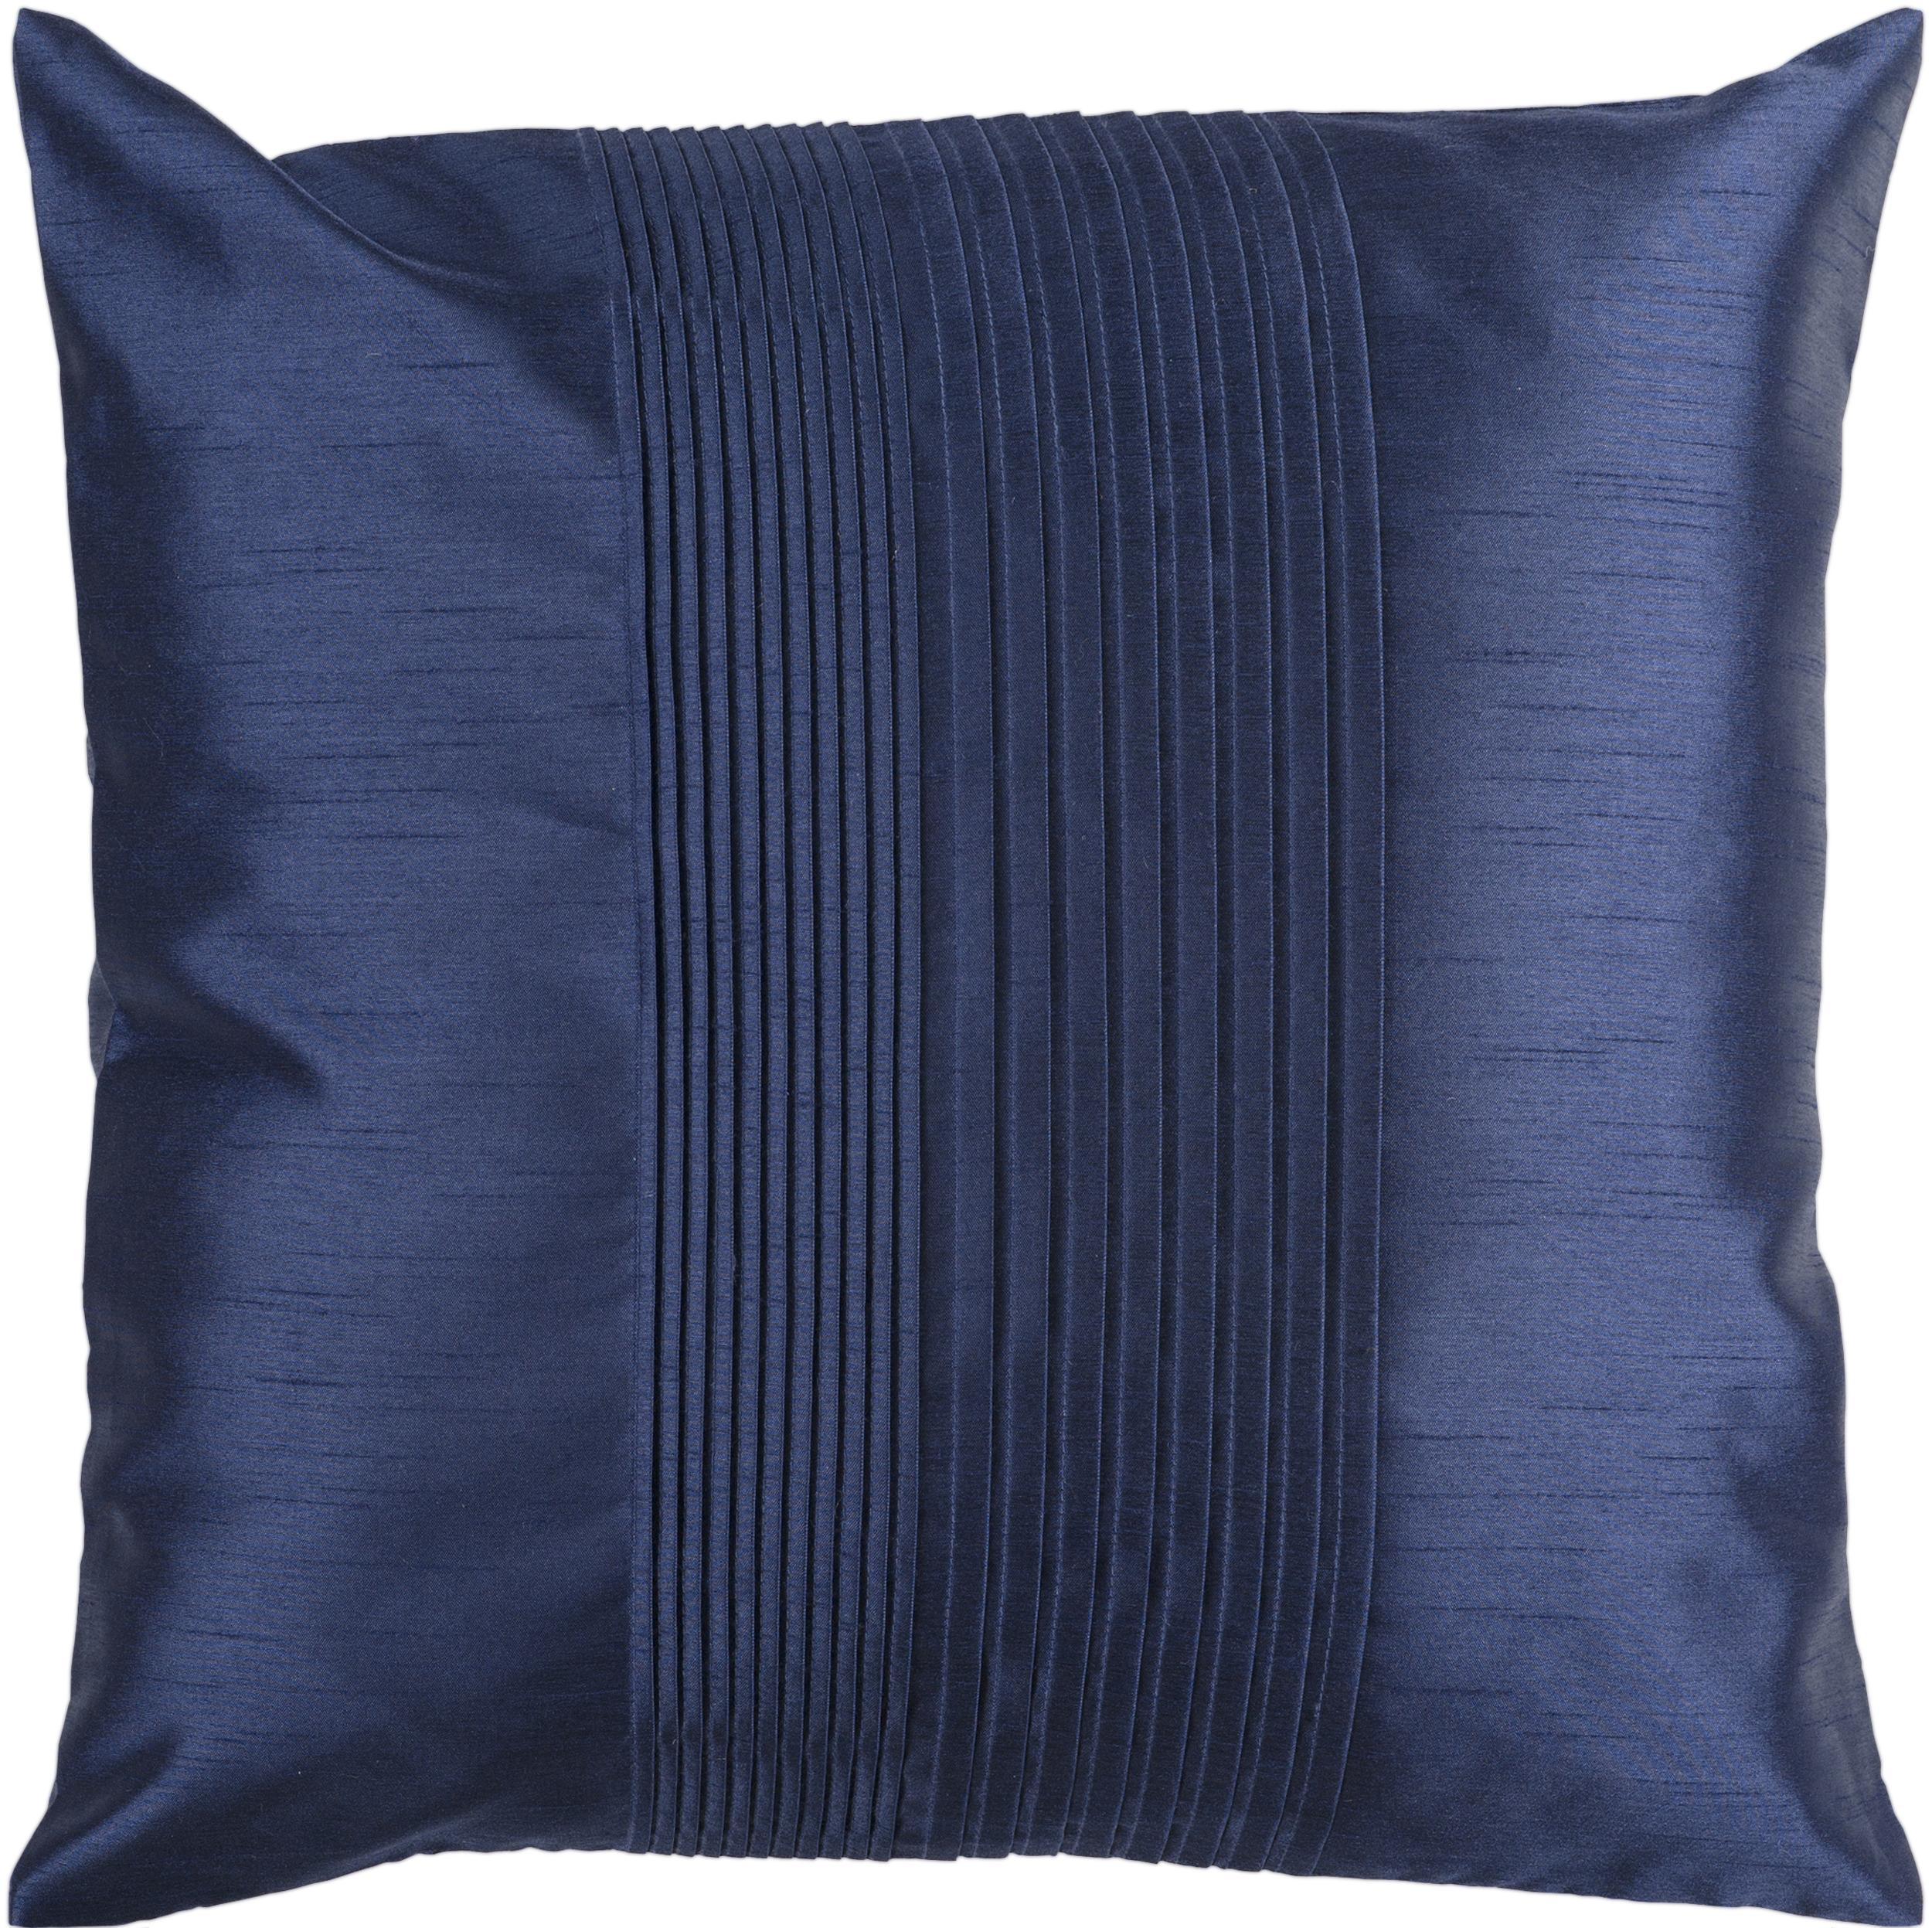 "Surya Rugs Pillows 18"" x 18"" Pillow - Item Number: HH029-1818P"